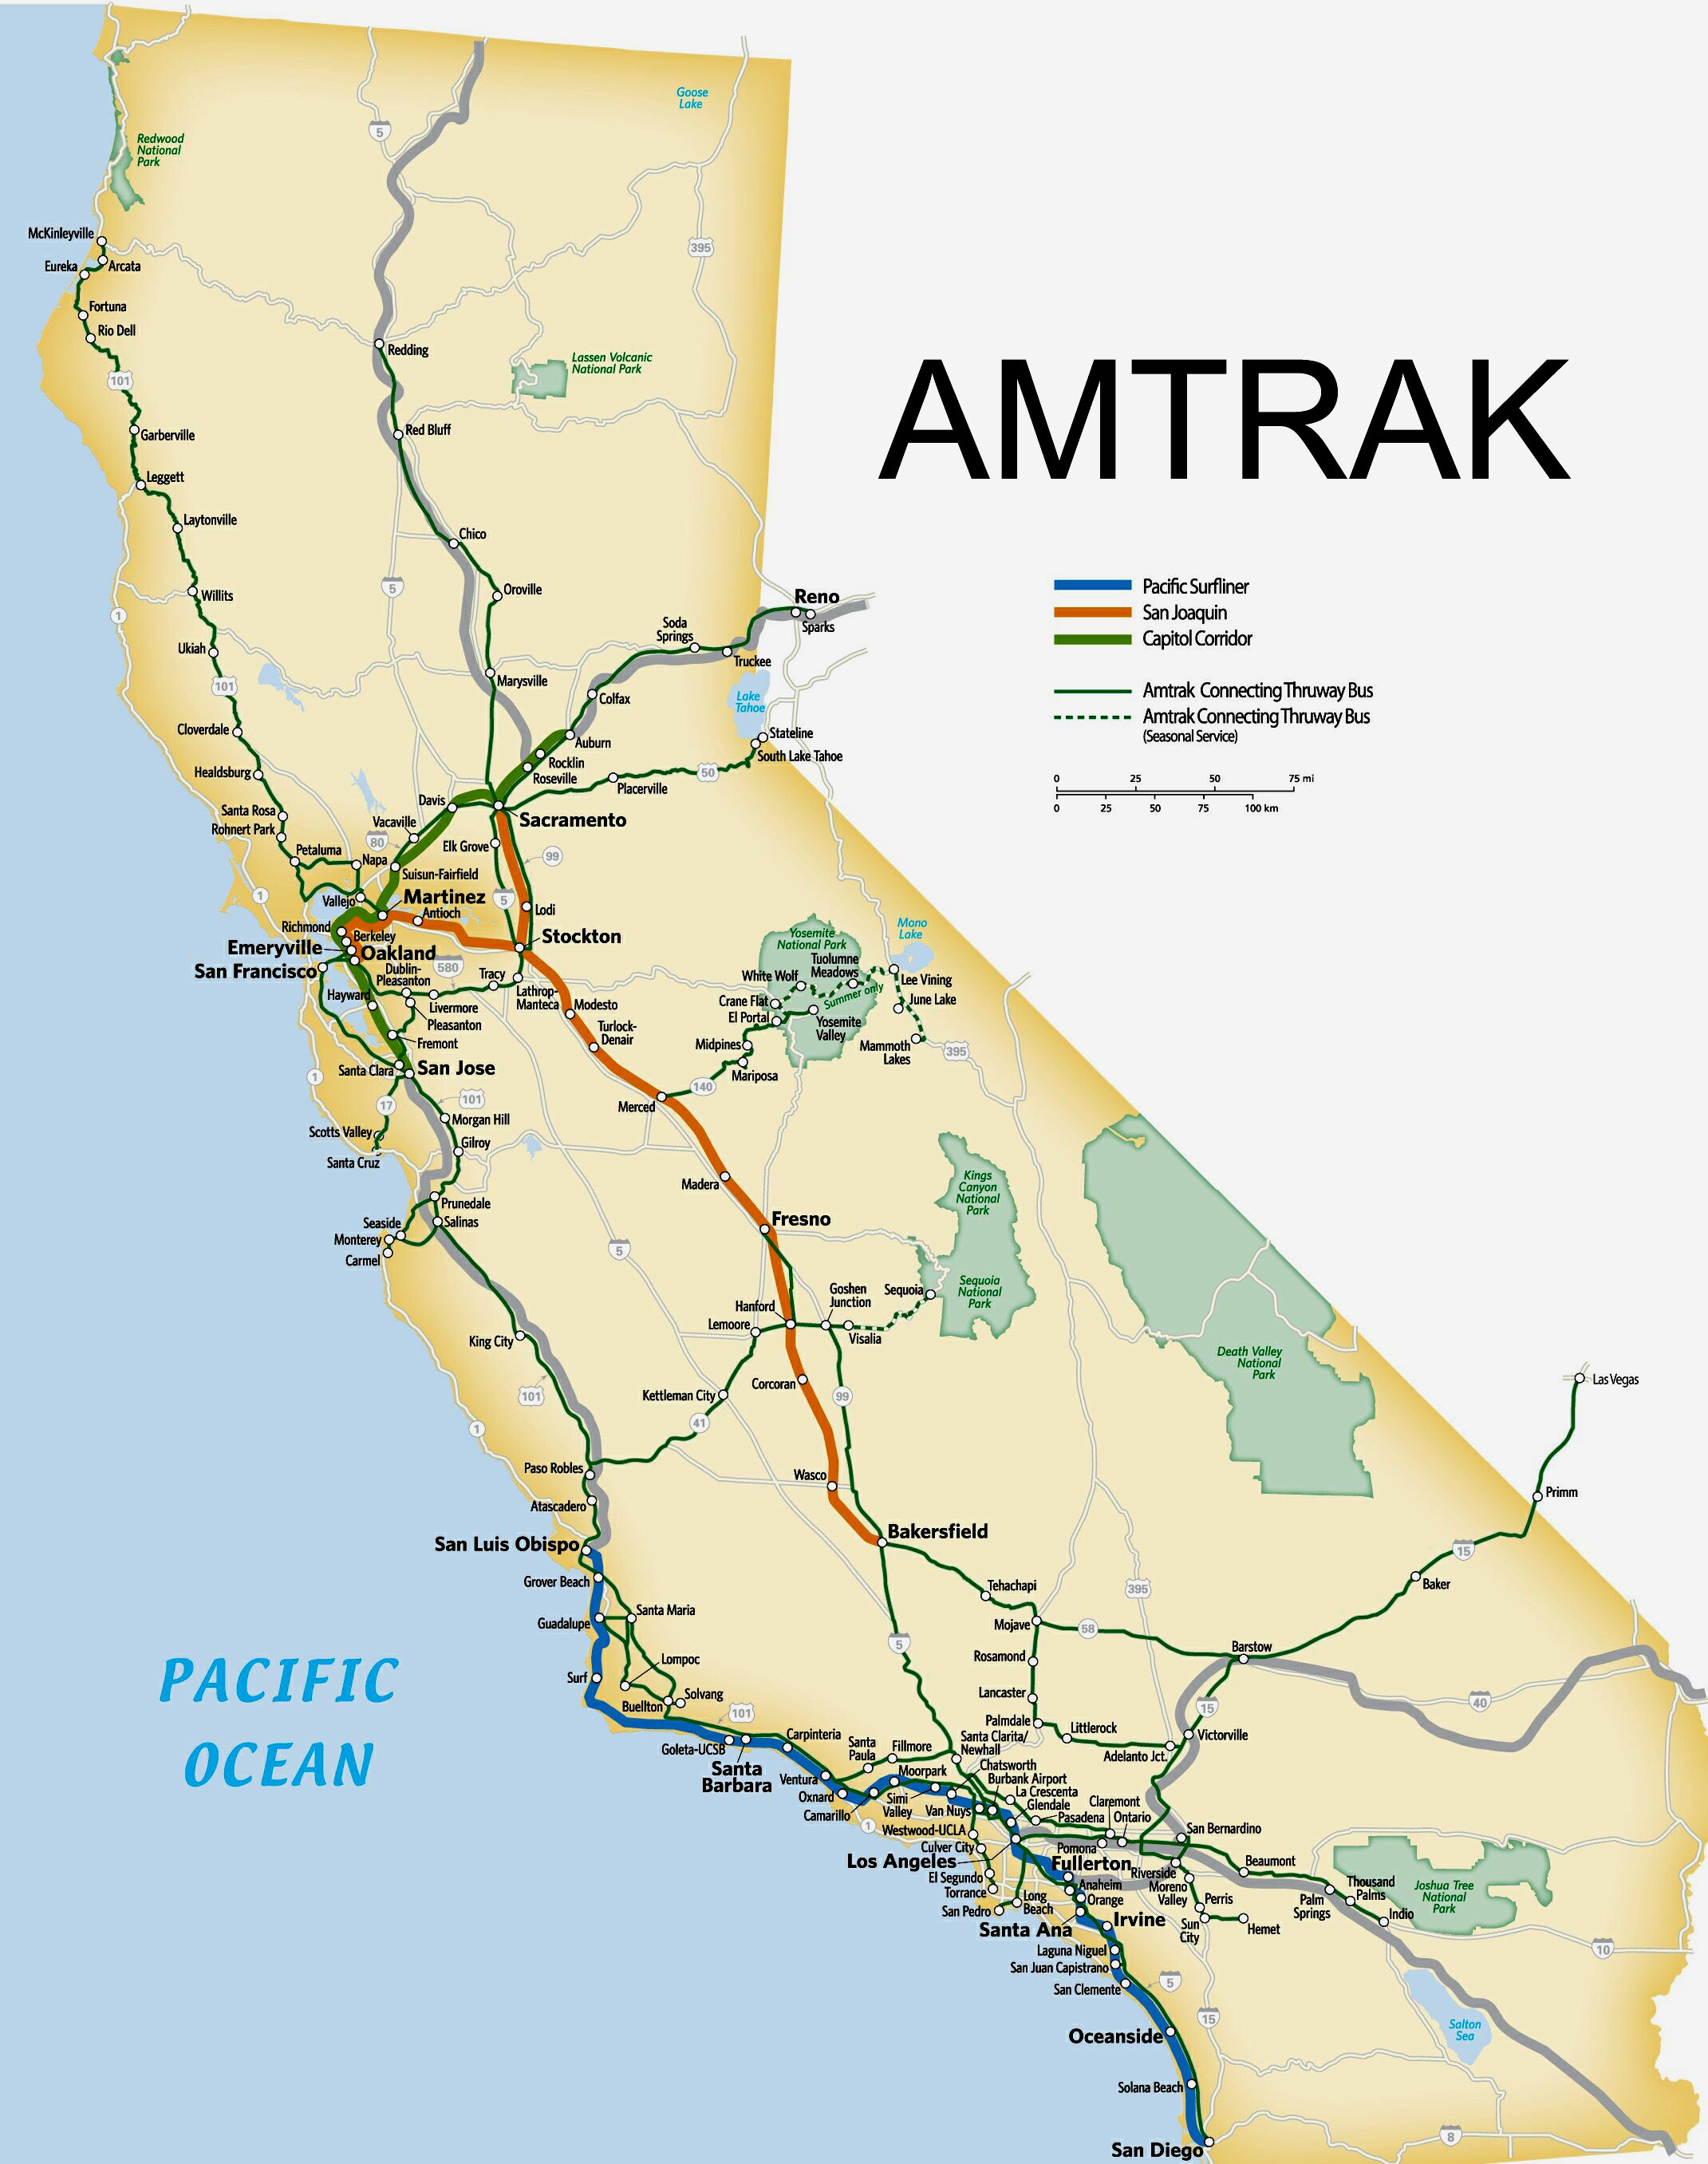 Amtrak Route Map Southern Map Of California Springs Amtrak Map - Amtrak California Coast Map